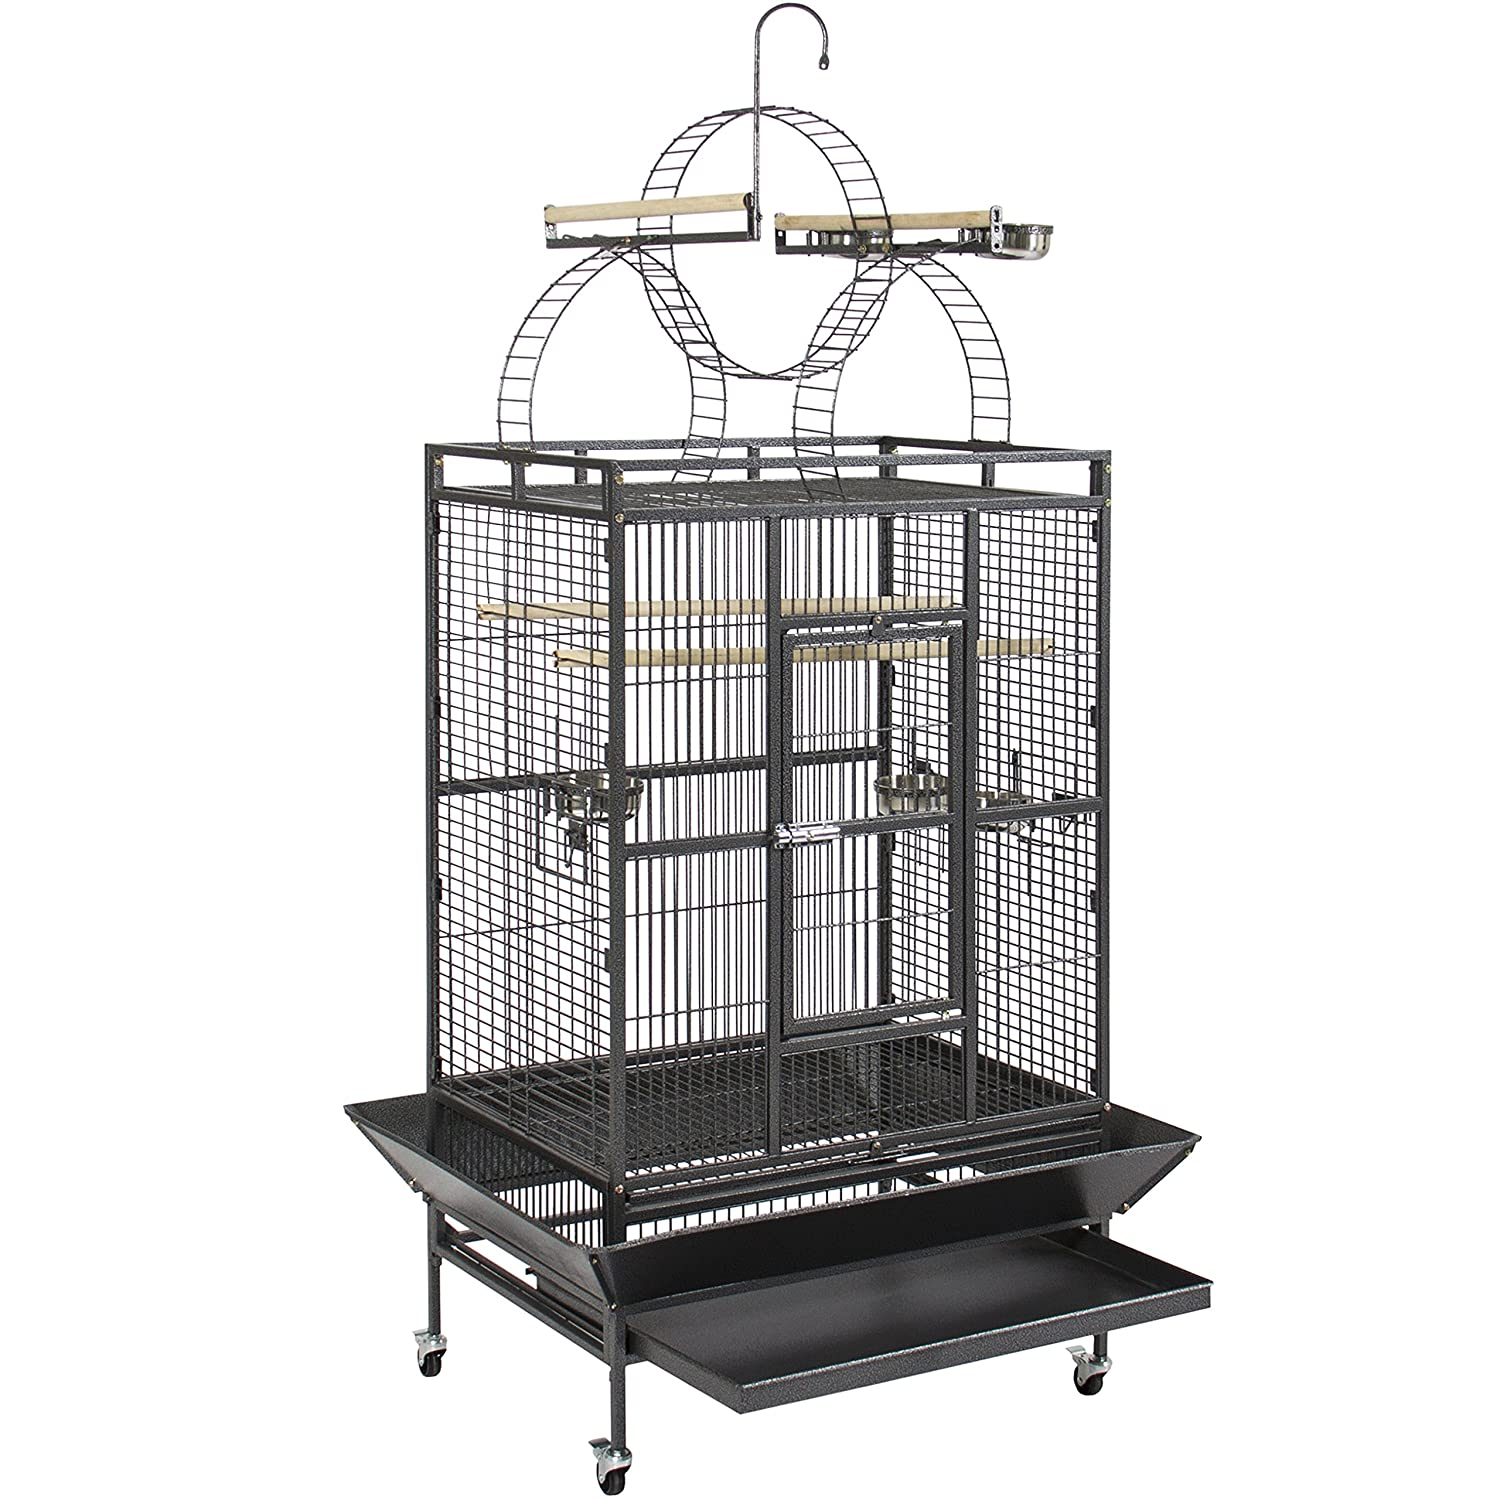 Best Choice Products 92in Durable Iron Bird Cage w/ Long Wooden Perches, Play Area, and Rolling Wheels - Black Best Choice Products - Pets SKY1775